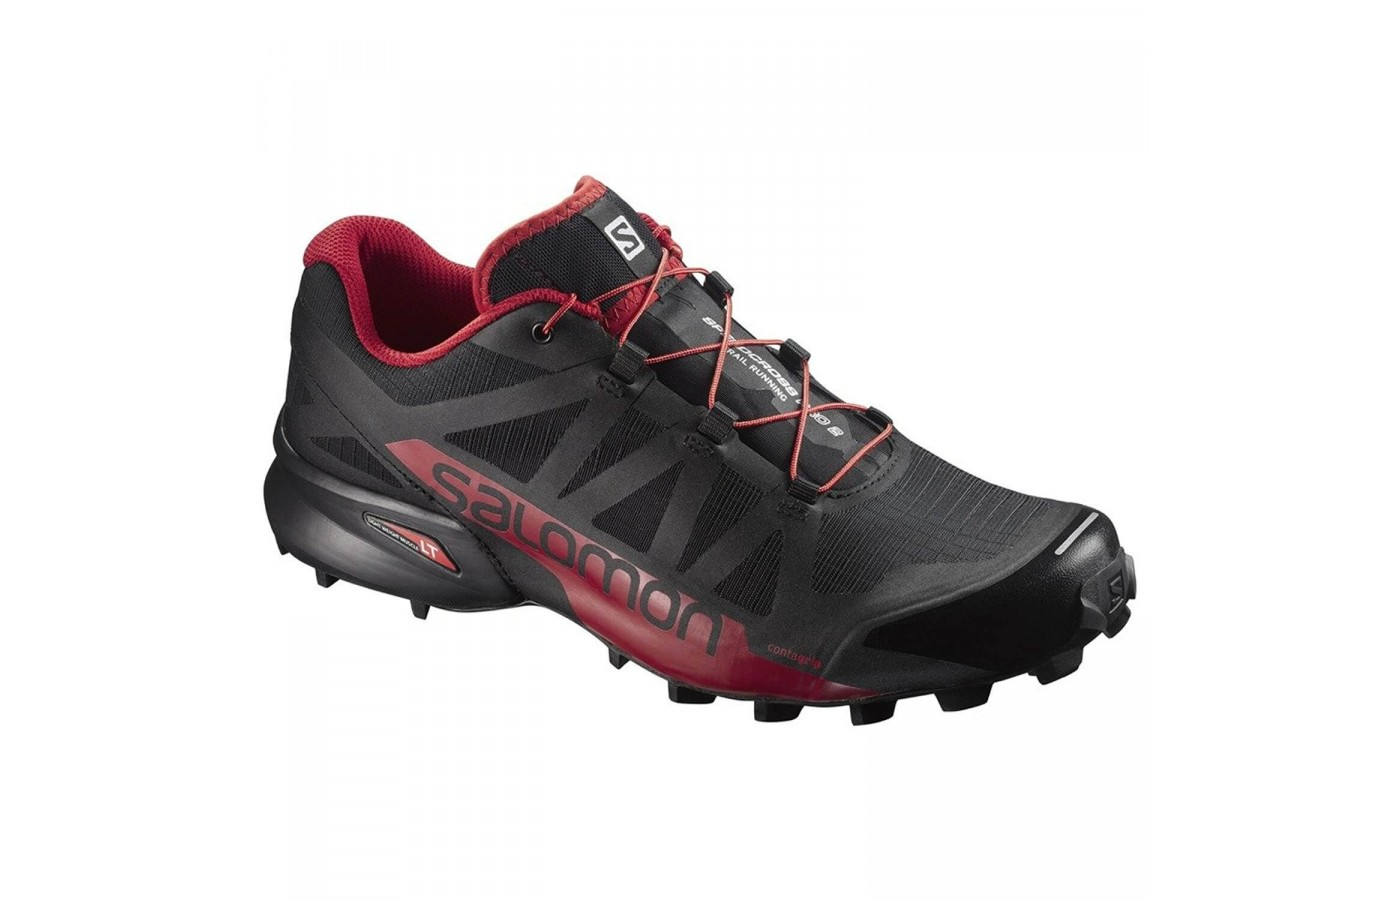 a1d4643b829c Salomon Speedcross Pro 2 - To Buy or Not in Apr 2019